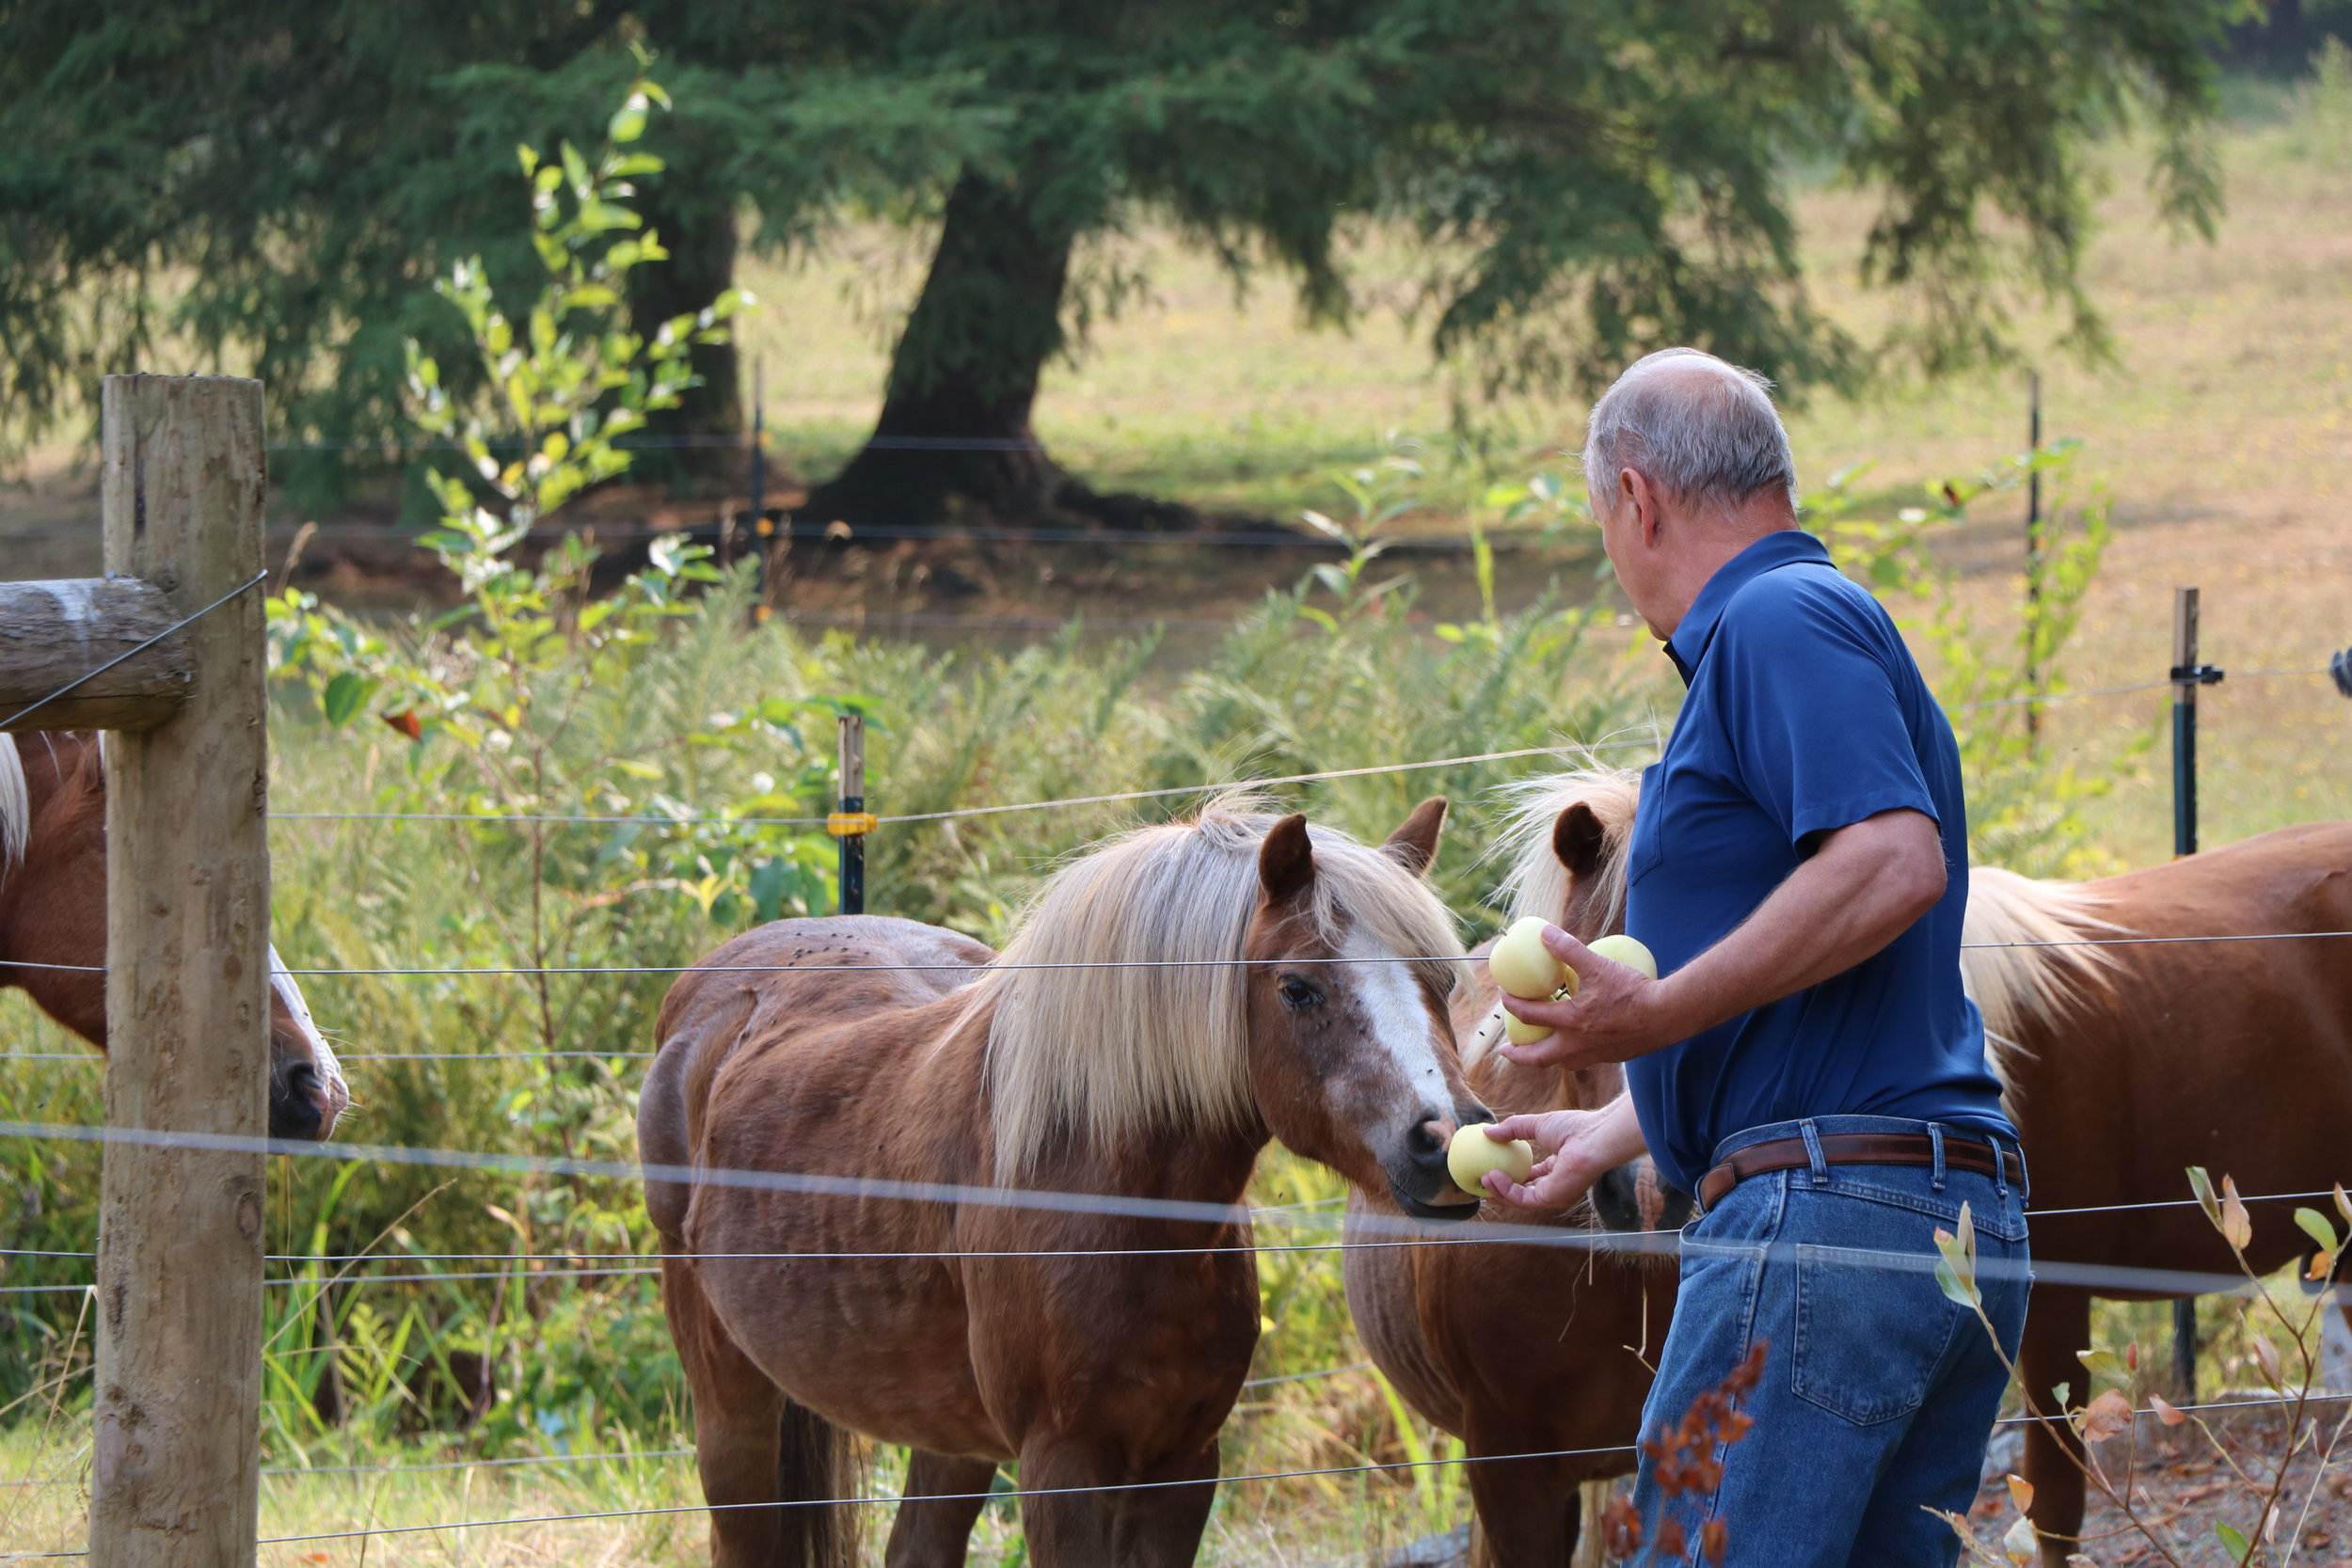 Bill feeds the American Shetland horses apples from his property.